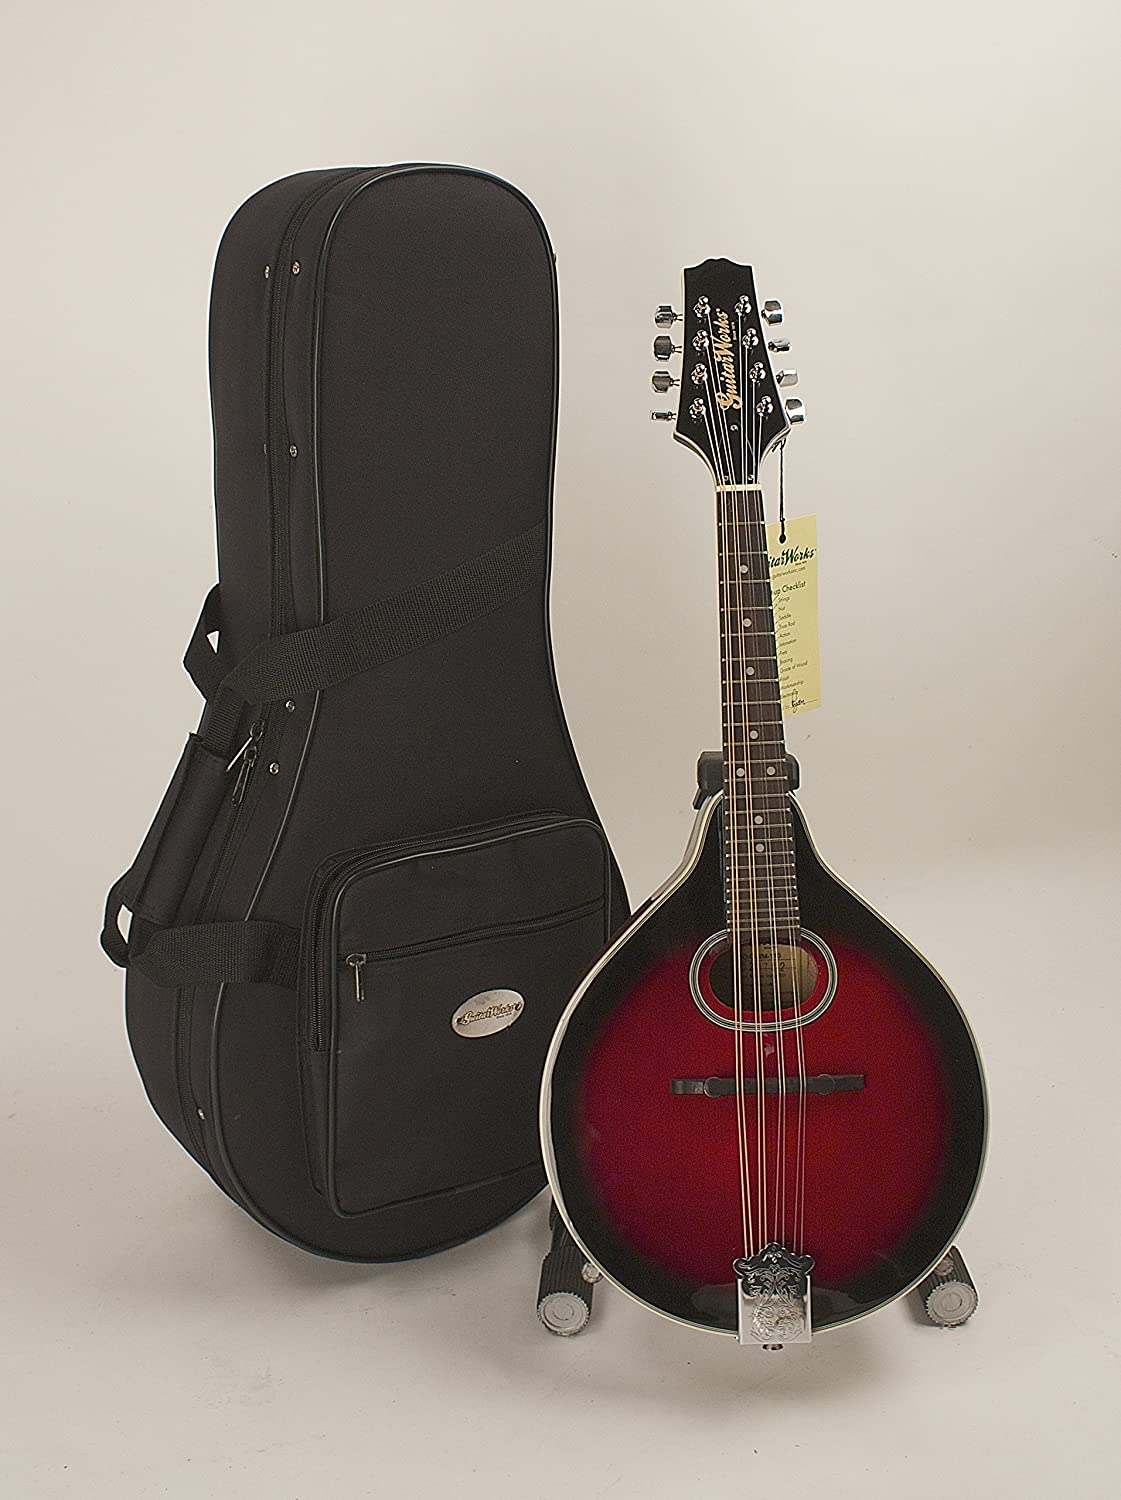 A-Style Mandolin Oval Soundhole Dark Wineburst Finish Set-Up & Adjusted In My Shop For Easy Play Strap And Hard Featherlte Case Included Guitar Works Inc.